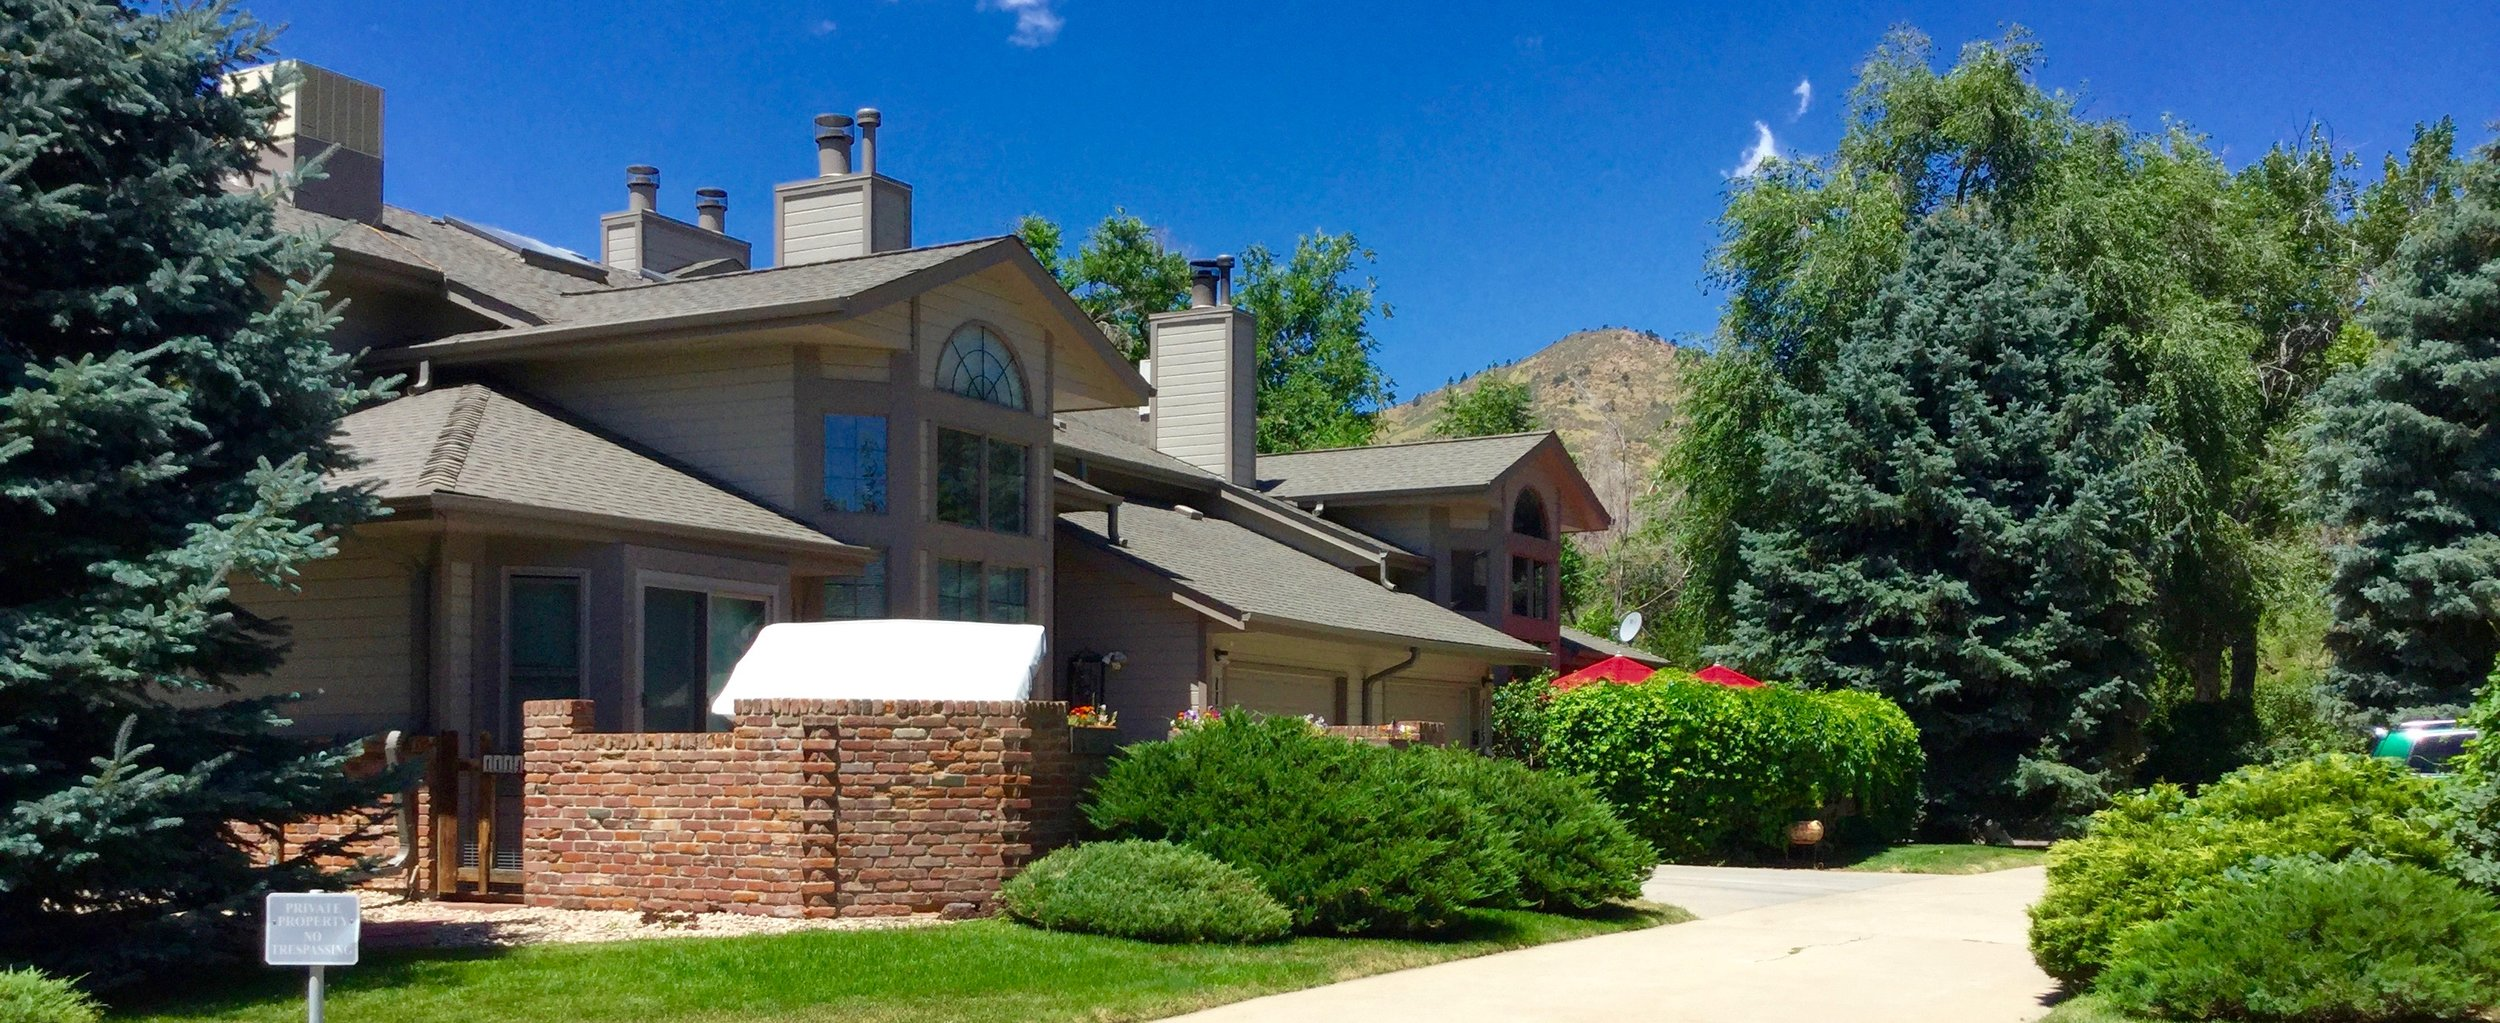 Townhome Properties available for sale in Golden, Colorado